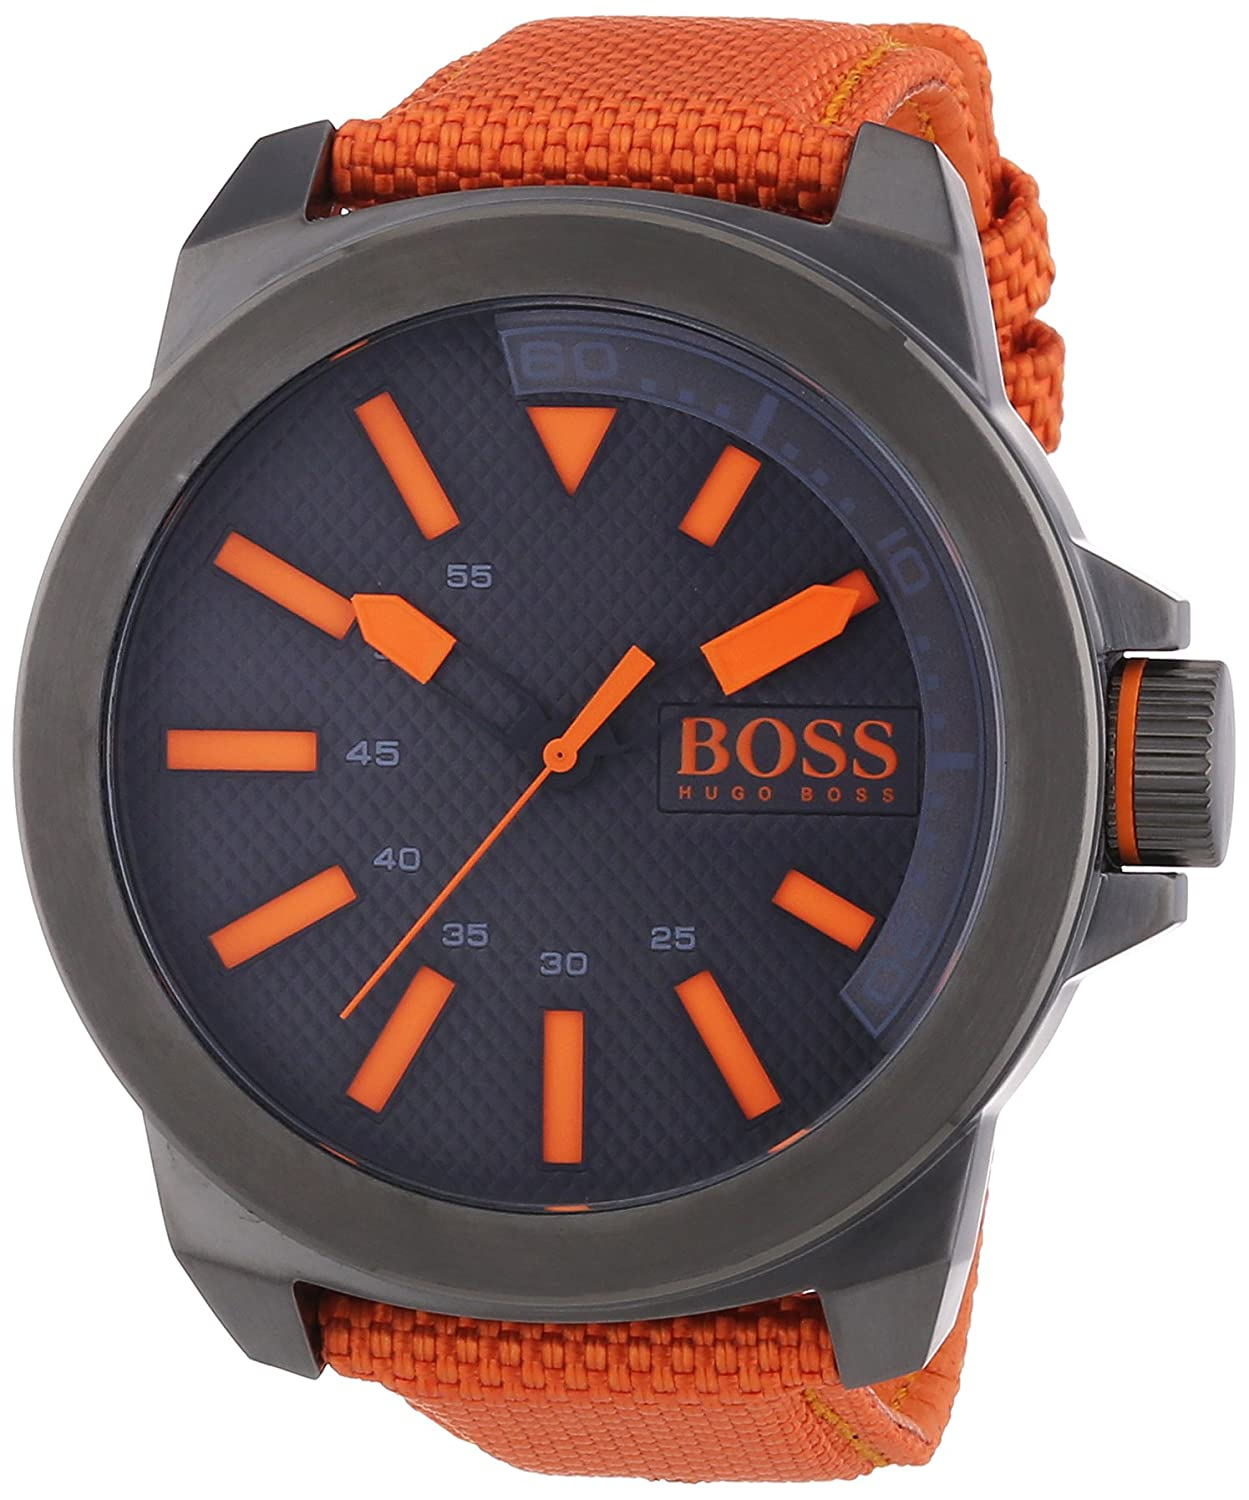 BOSS Orange Herren-Armbanduhr XL New York Analog Quarz Textil 1513010